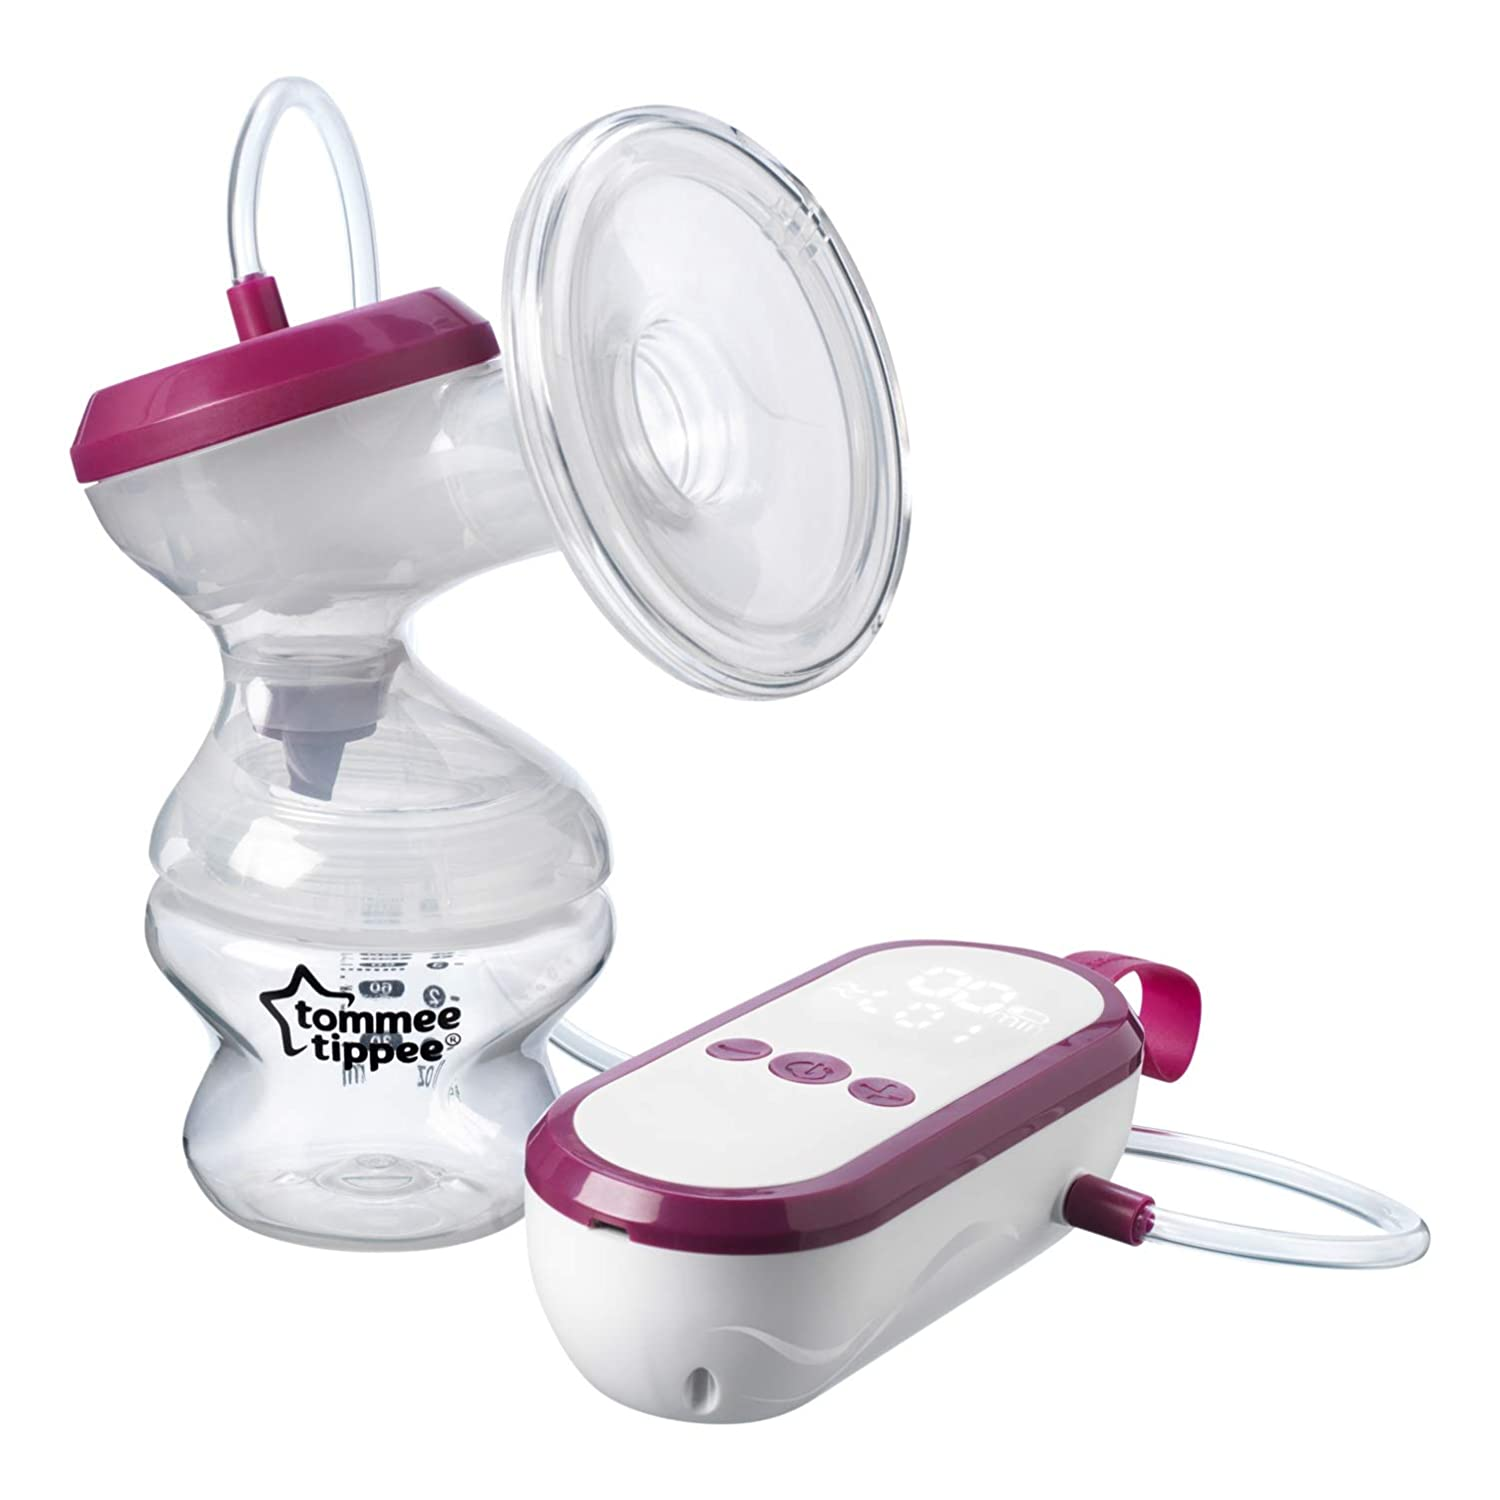 Tommee Tippee Best Electric Breast Pump